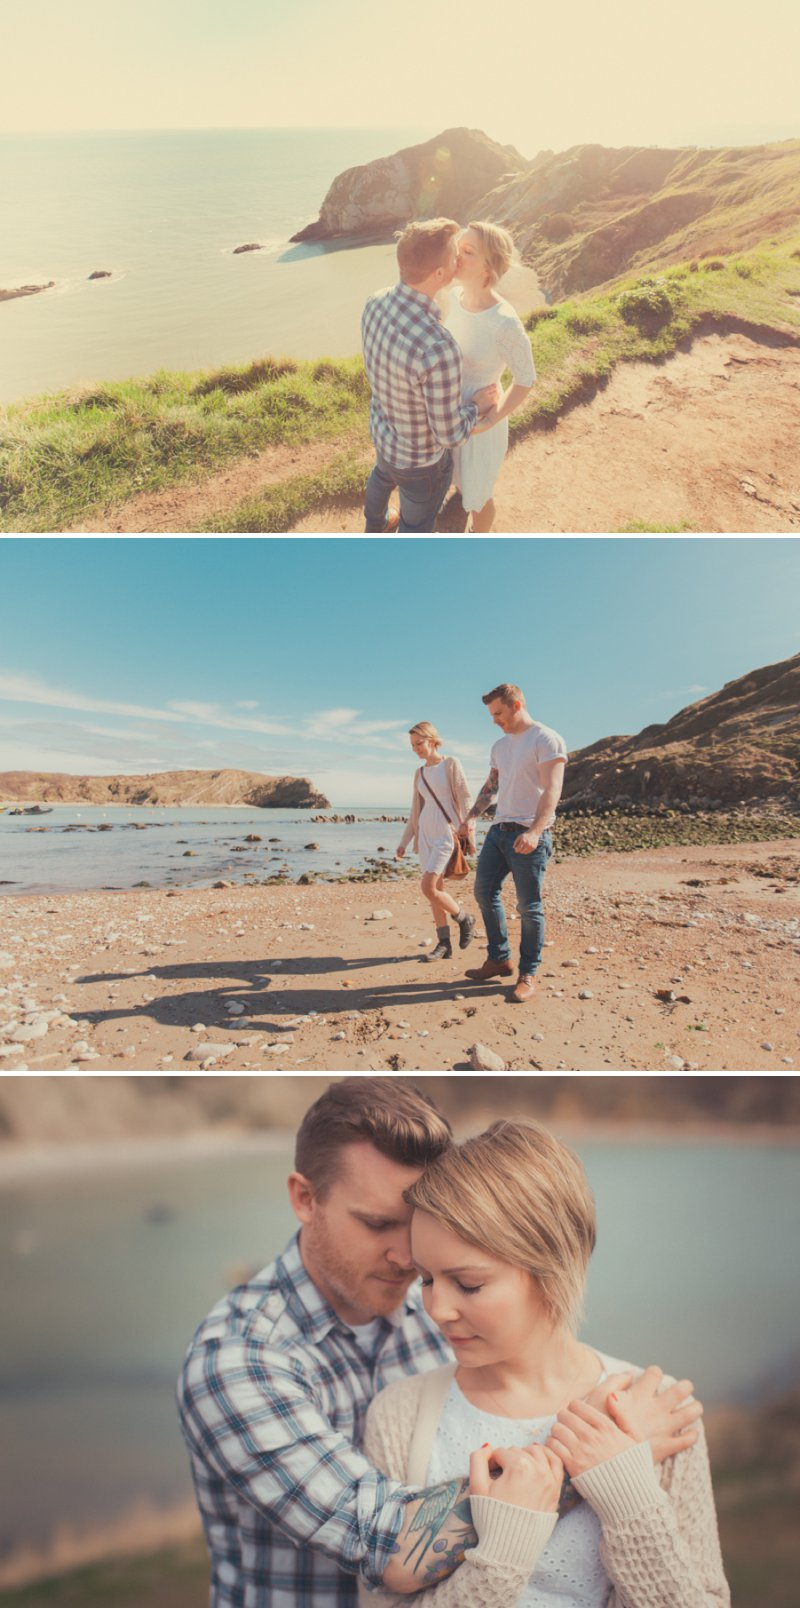 Engagement Shoot From James Green Photography At Lulworth Cove And Durdle Door On The Jurassic Coast 1